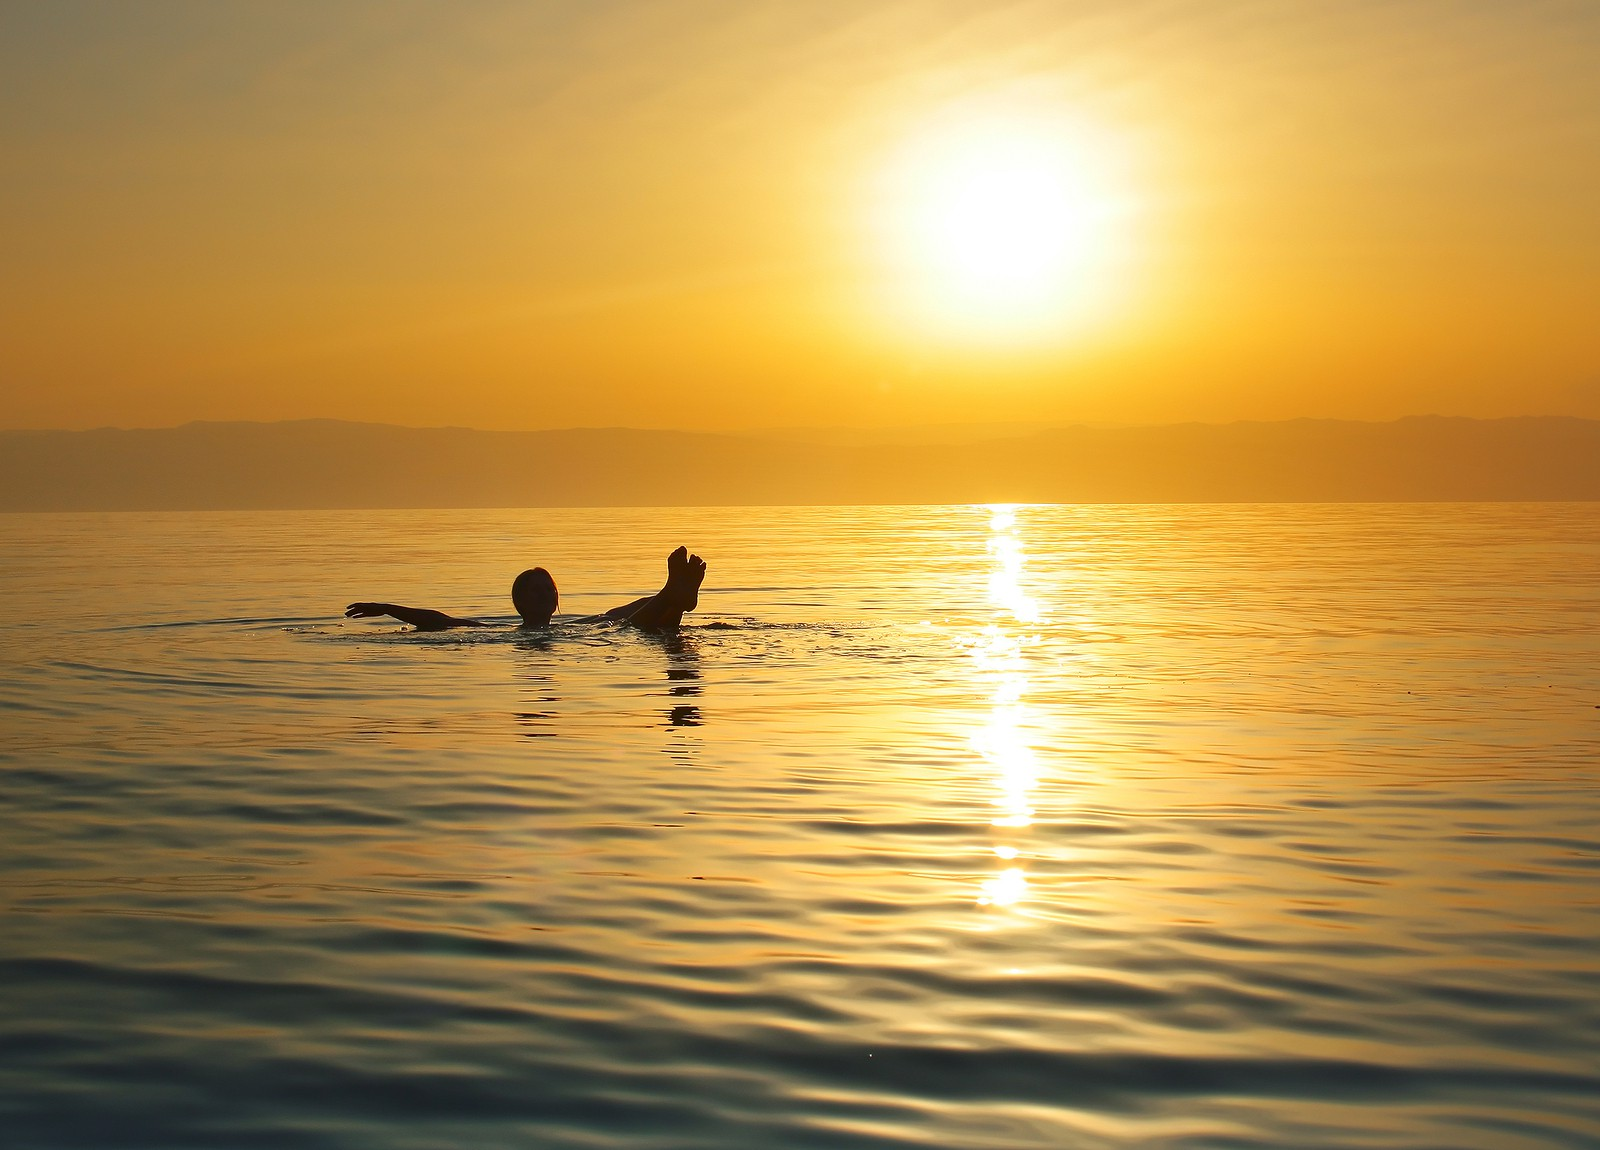 a person floating in the sea during sunset chilling and relaxing